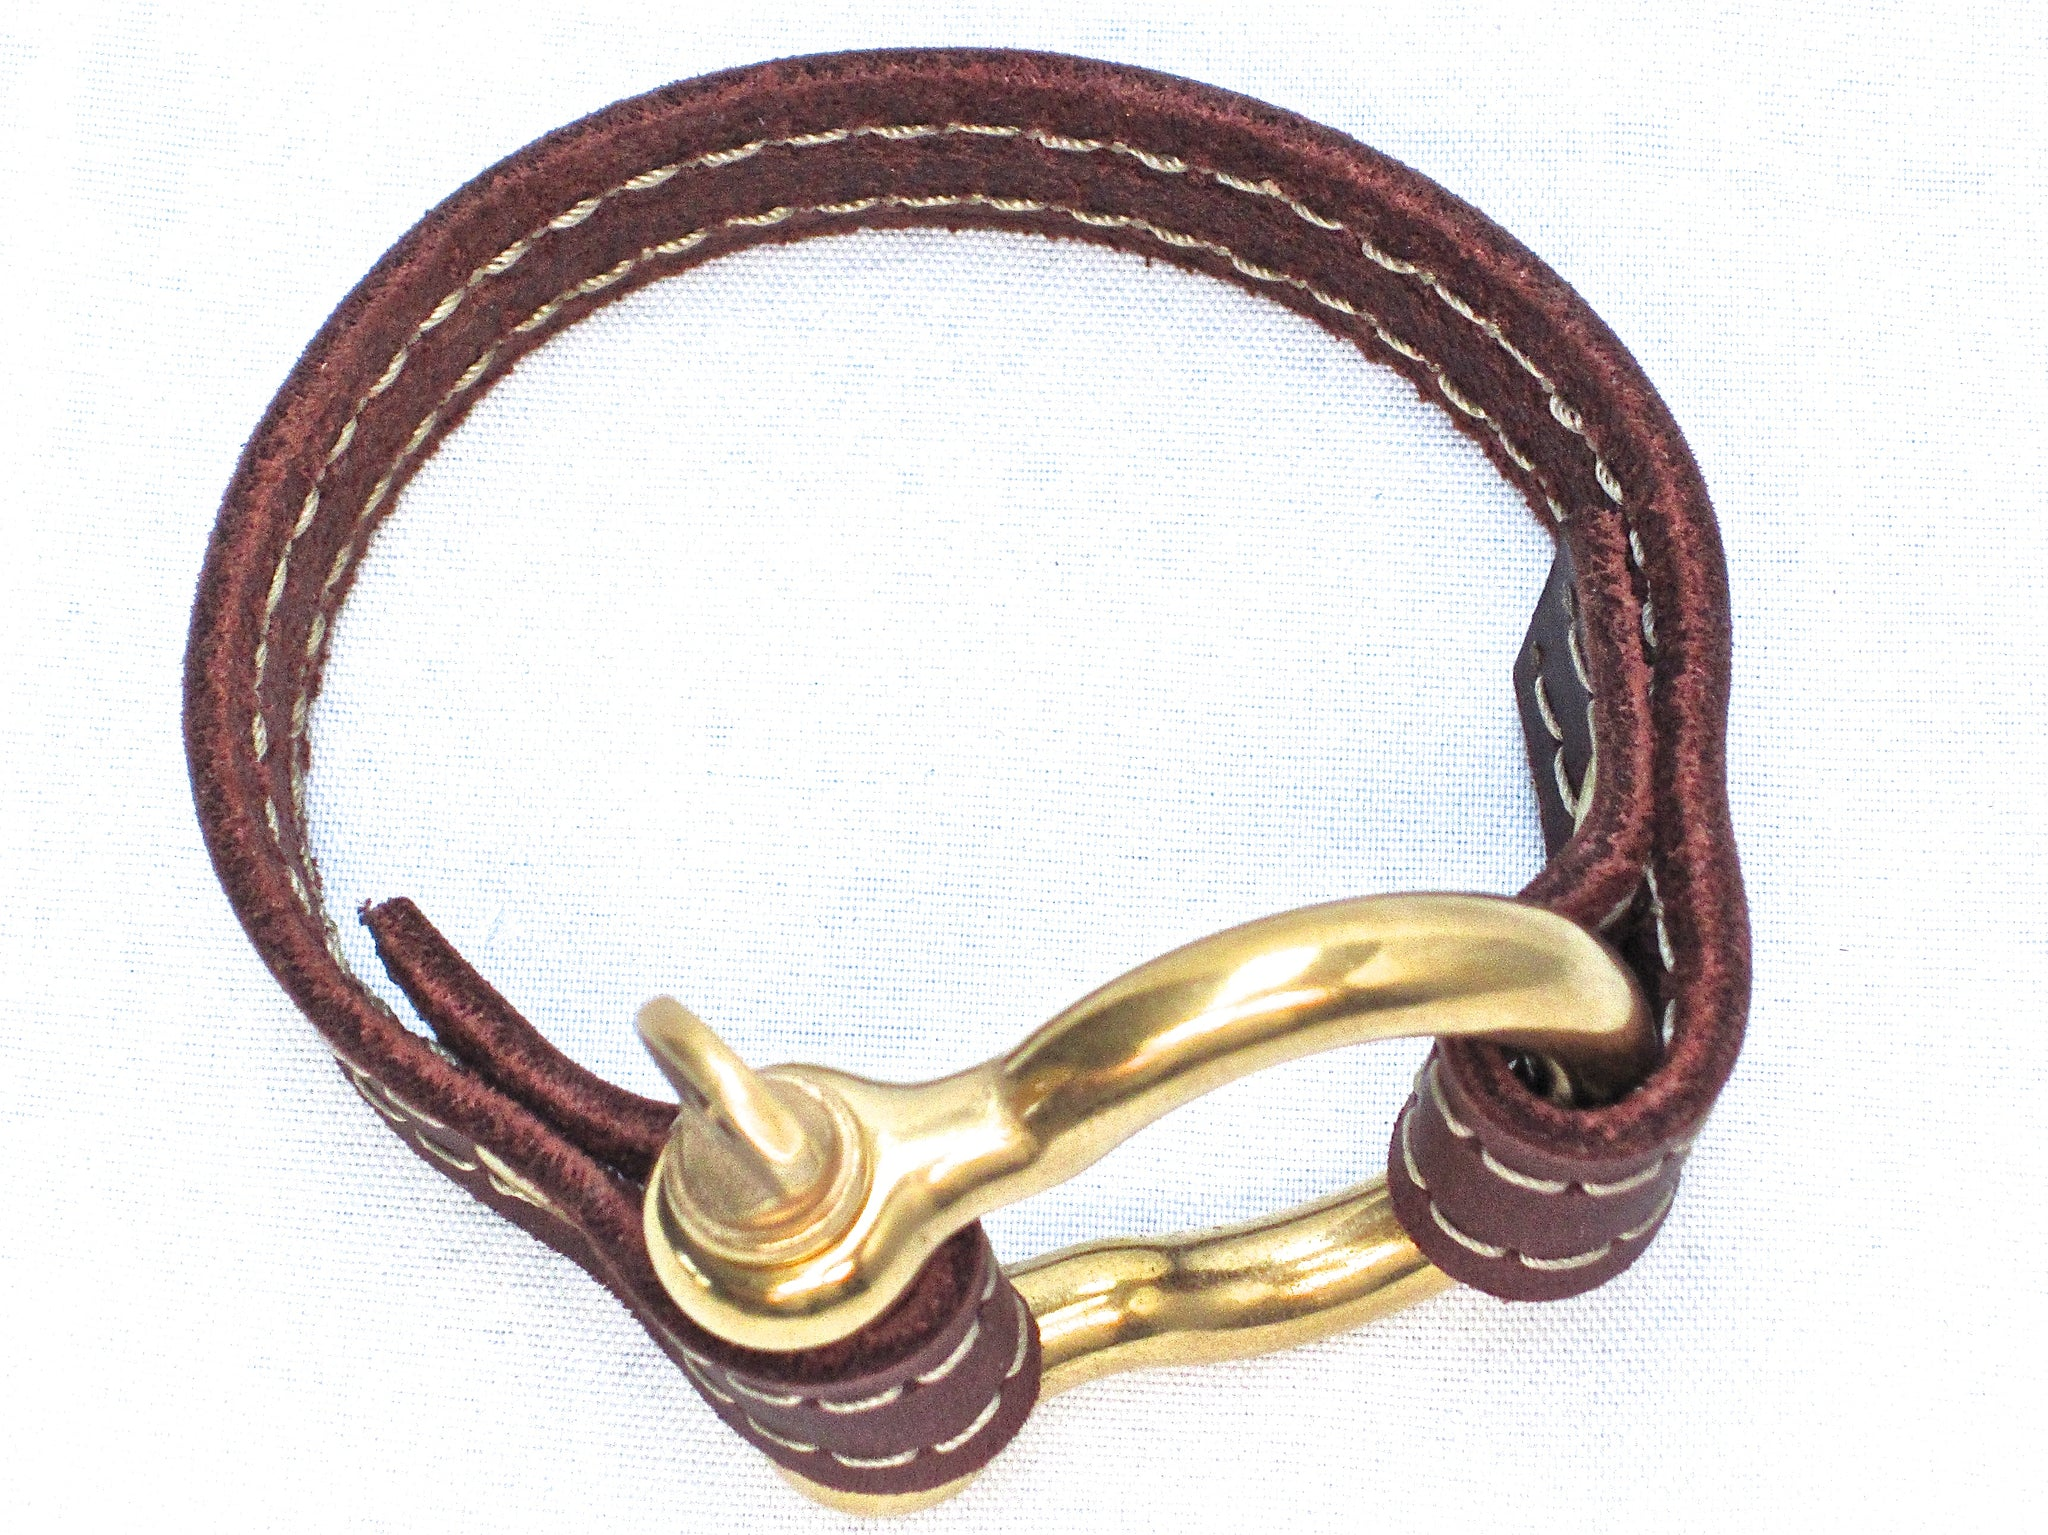 Nyet jewelry Signature Gold Bracelet Brown by nyet jewelry